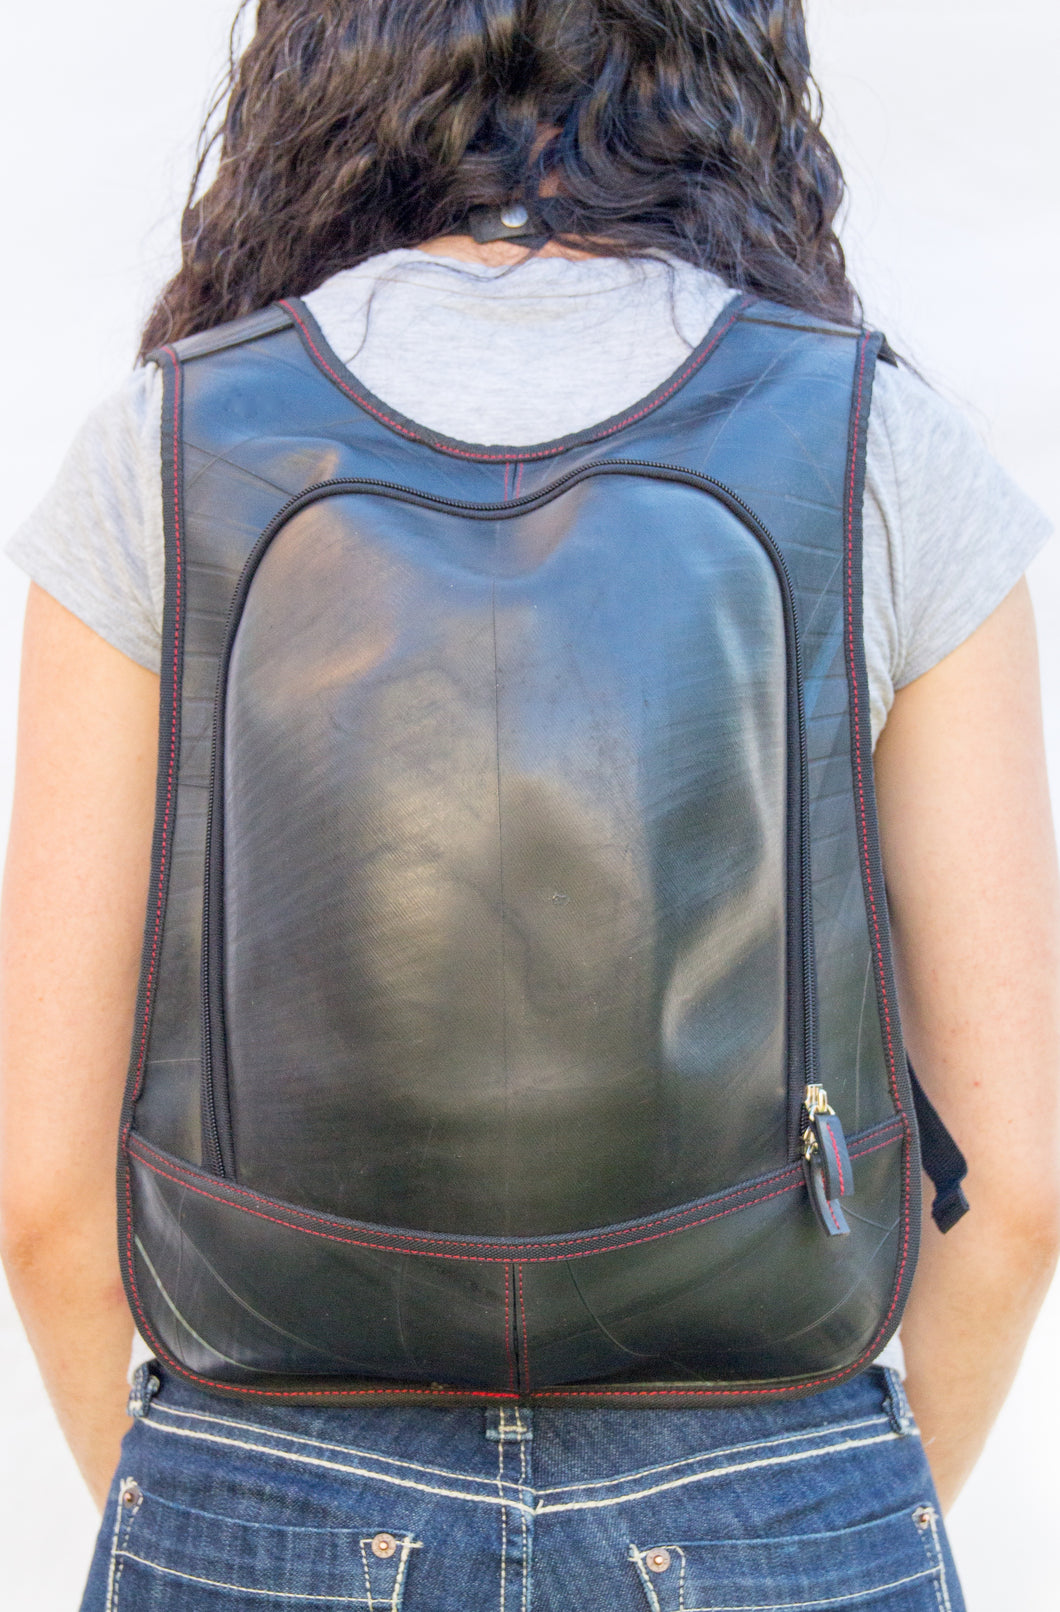 chic made consciously sustainable backpack made from repurposed tire inner tubes